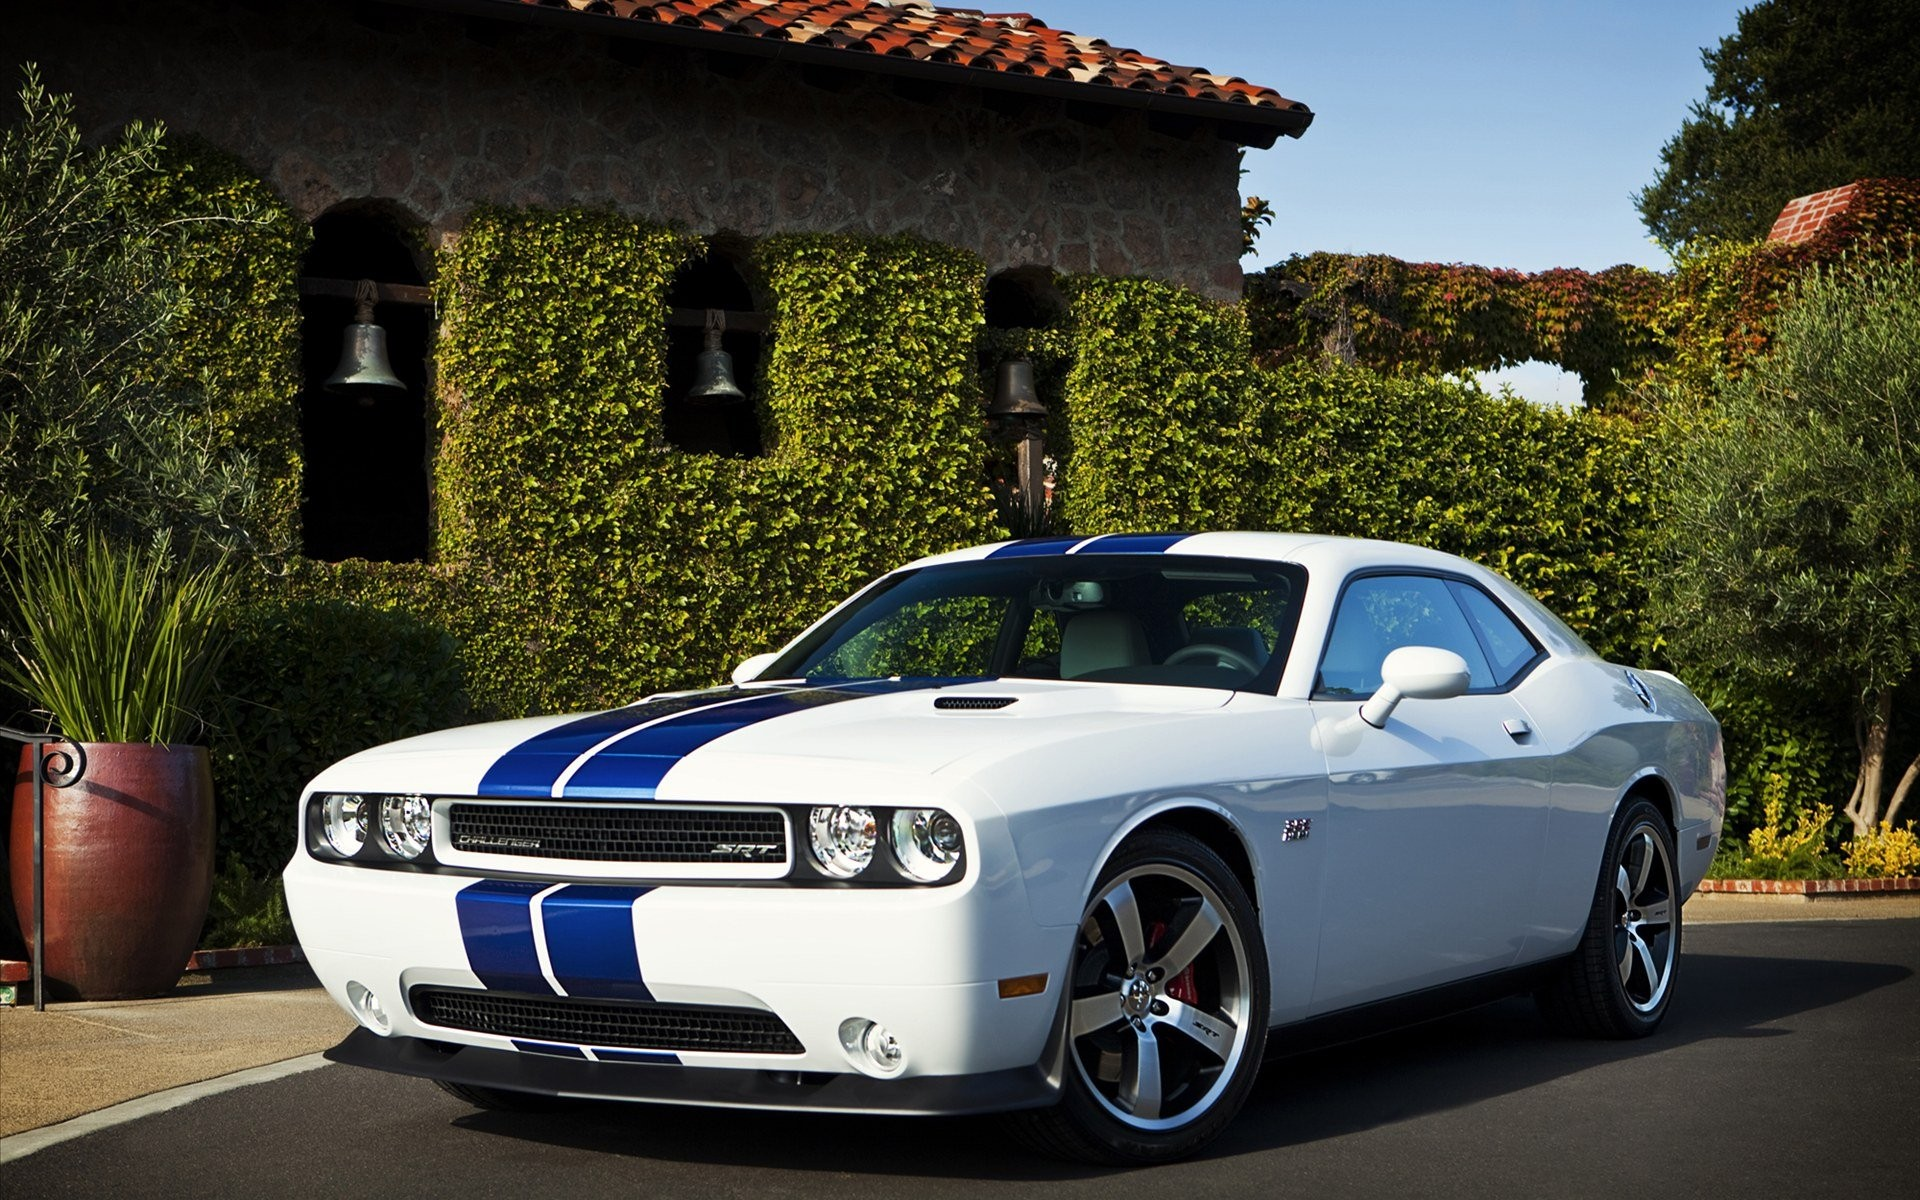 White cars dodge challenger racing stripes muscle car wallpaper 1920x1200 198529 wallpaperup